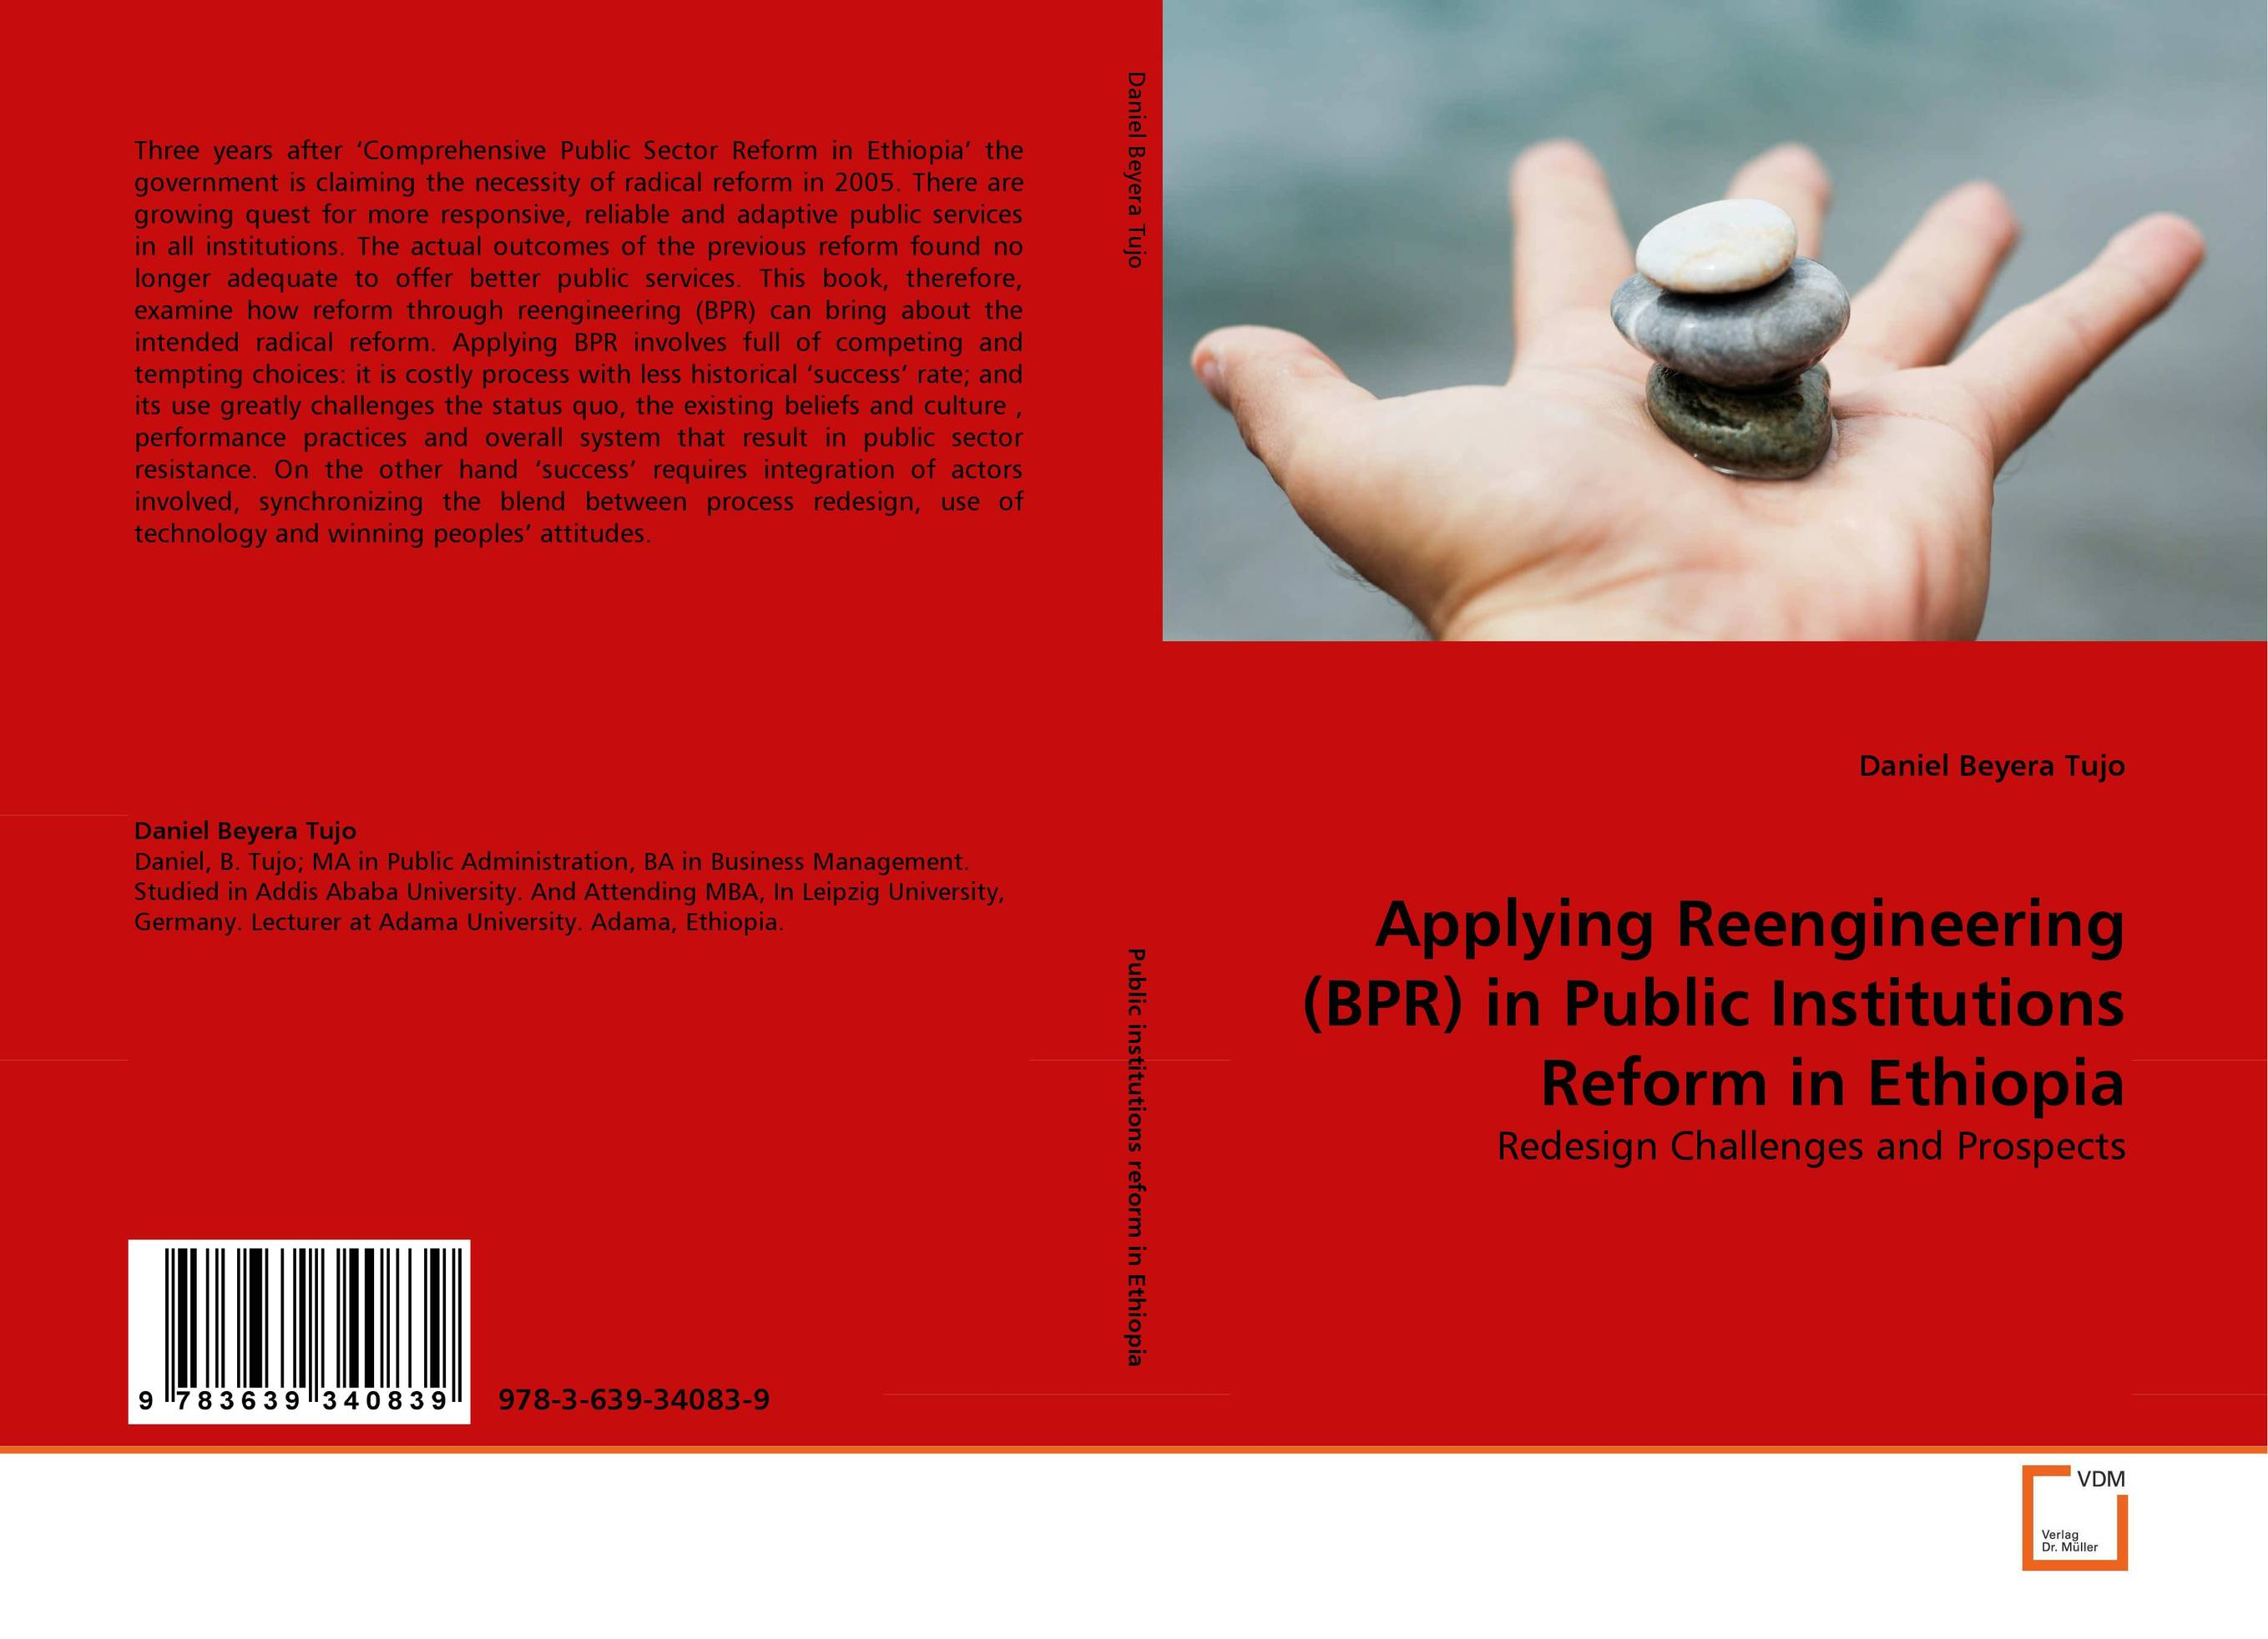 Applying Reengineering (BPR) in Public Institutions Reform in Ethiopia duncan bruce the dream cafe lessons in the art of radical innovation